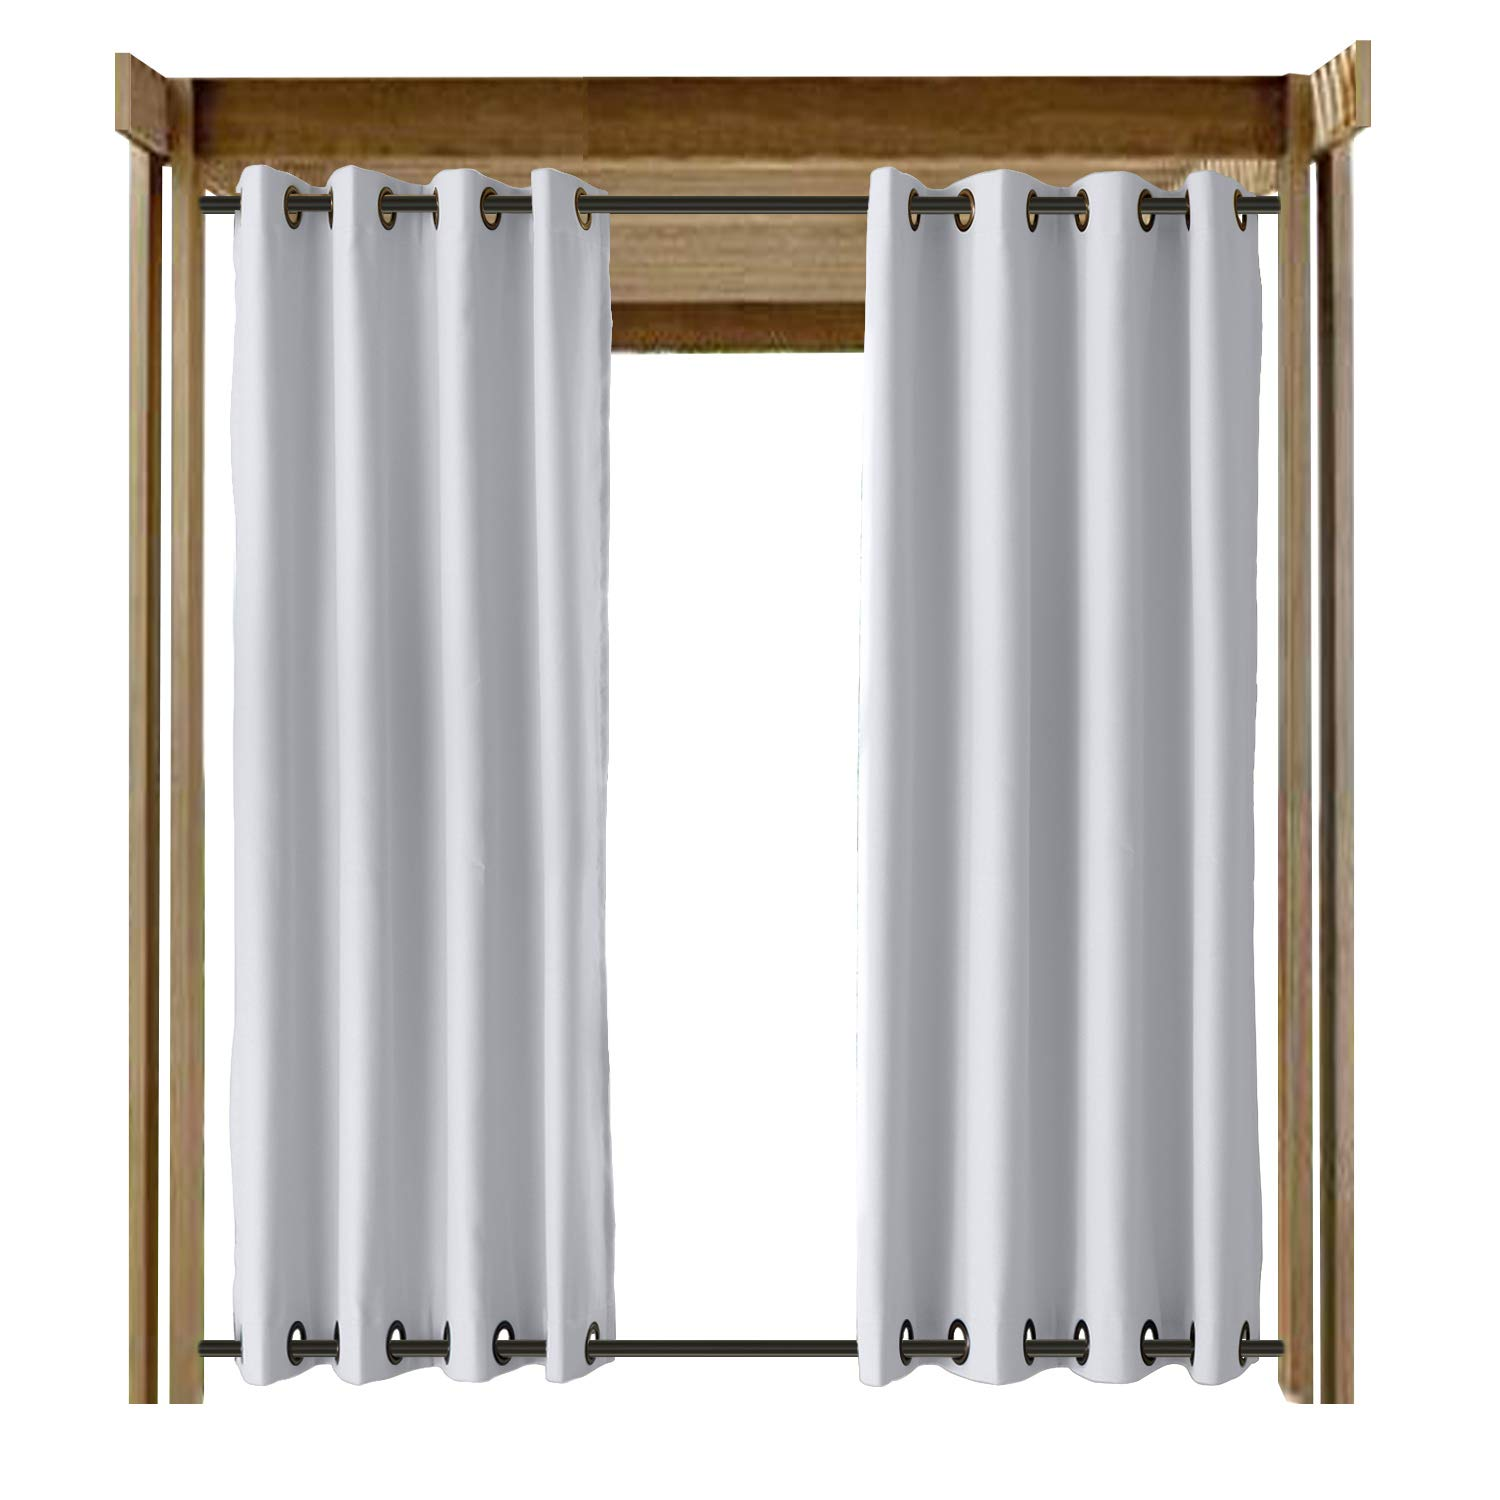 CosyPages Summer Outdoor Curtains for Front Porch Pergola Cabana Covered Patio Gazebo Dock Beach Home Noise Reducing Heat Insulated Grommet at Top and Bottom Rose 150'' W x 96'' L (1 Panel) White